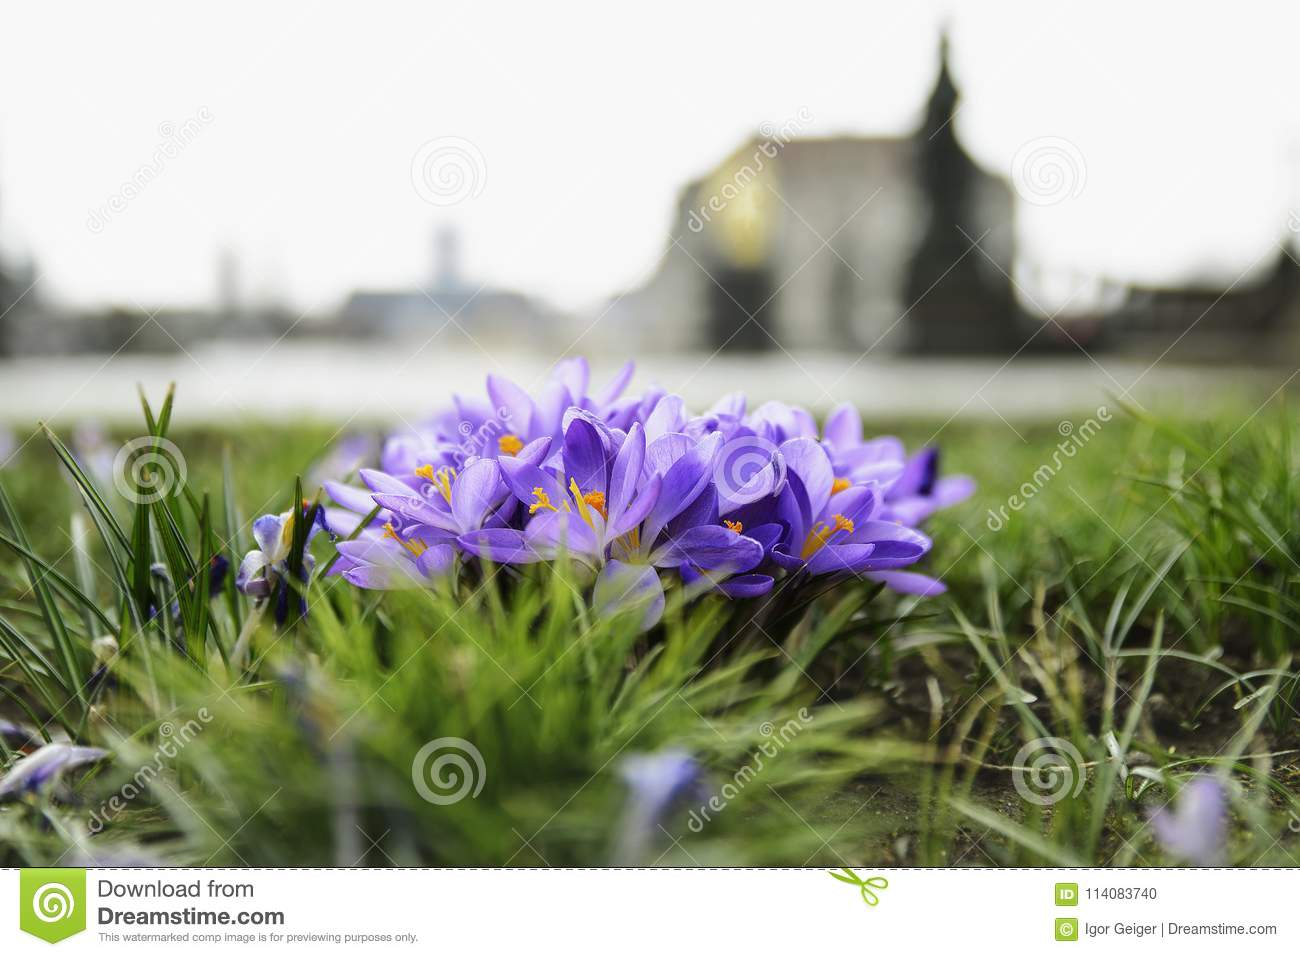 Purple Flowers With Yellow Stamens Against The Backdrop Of The